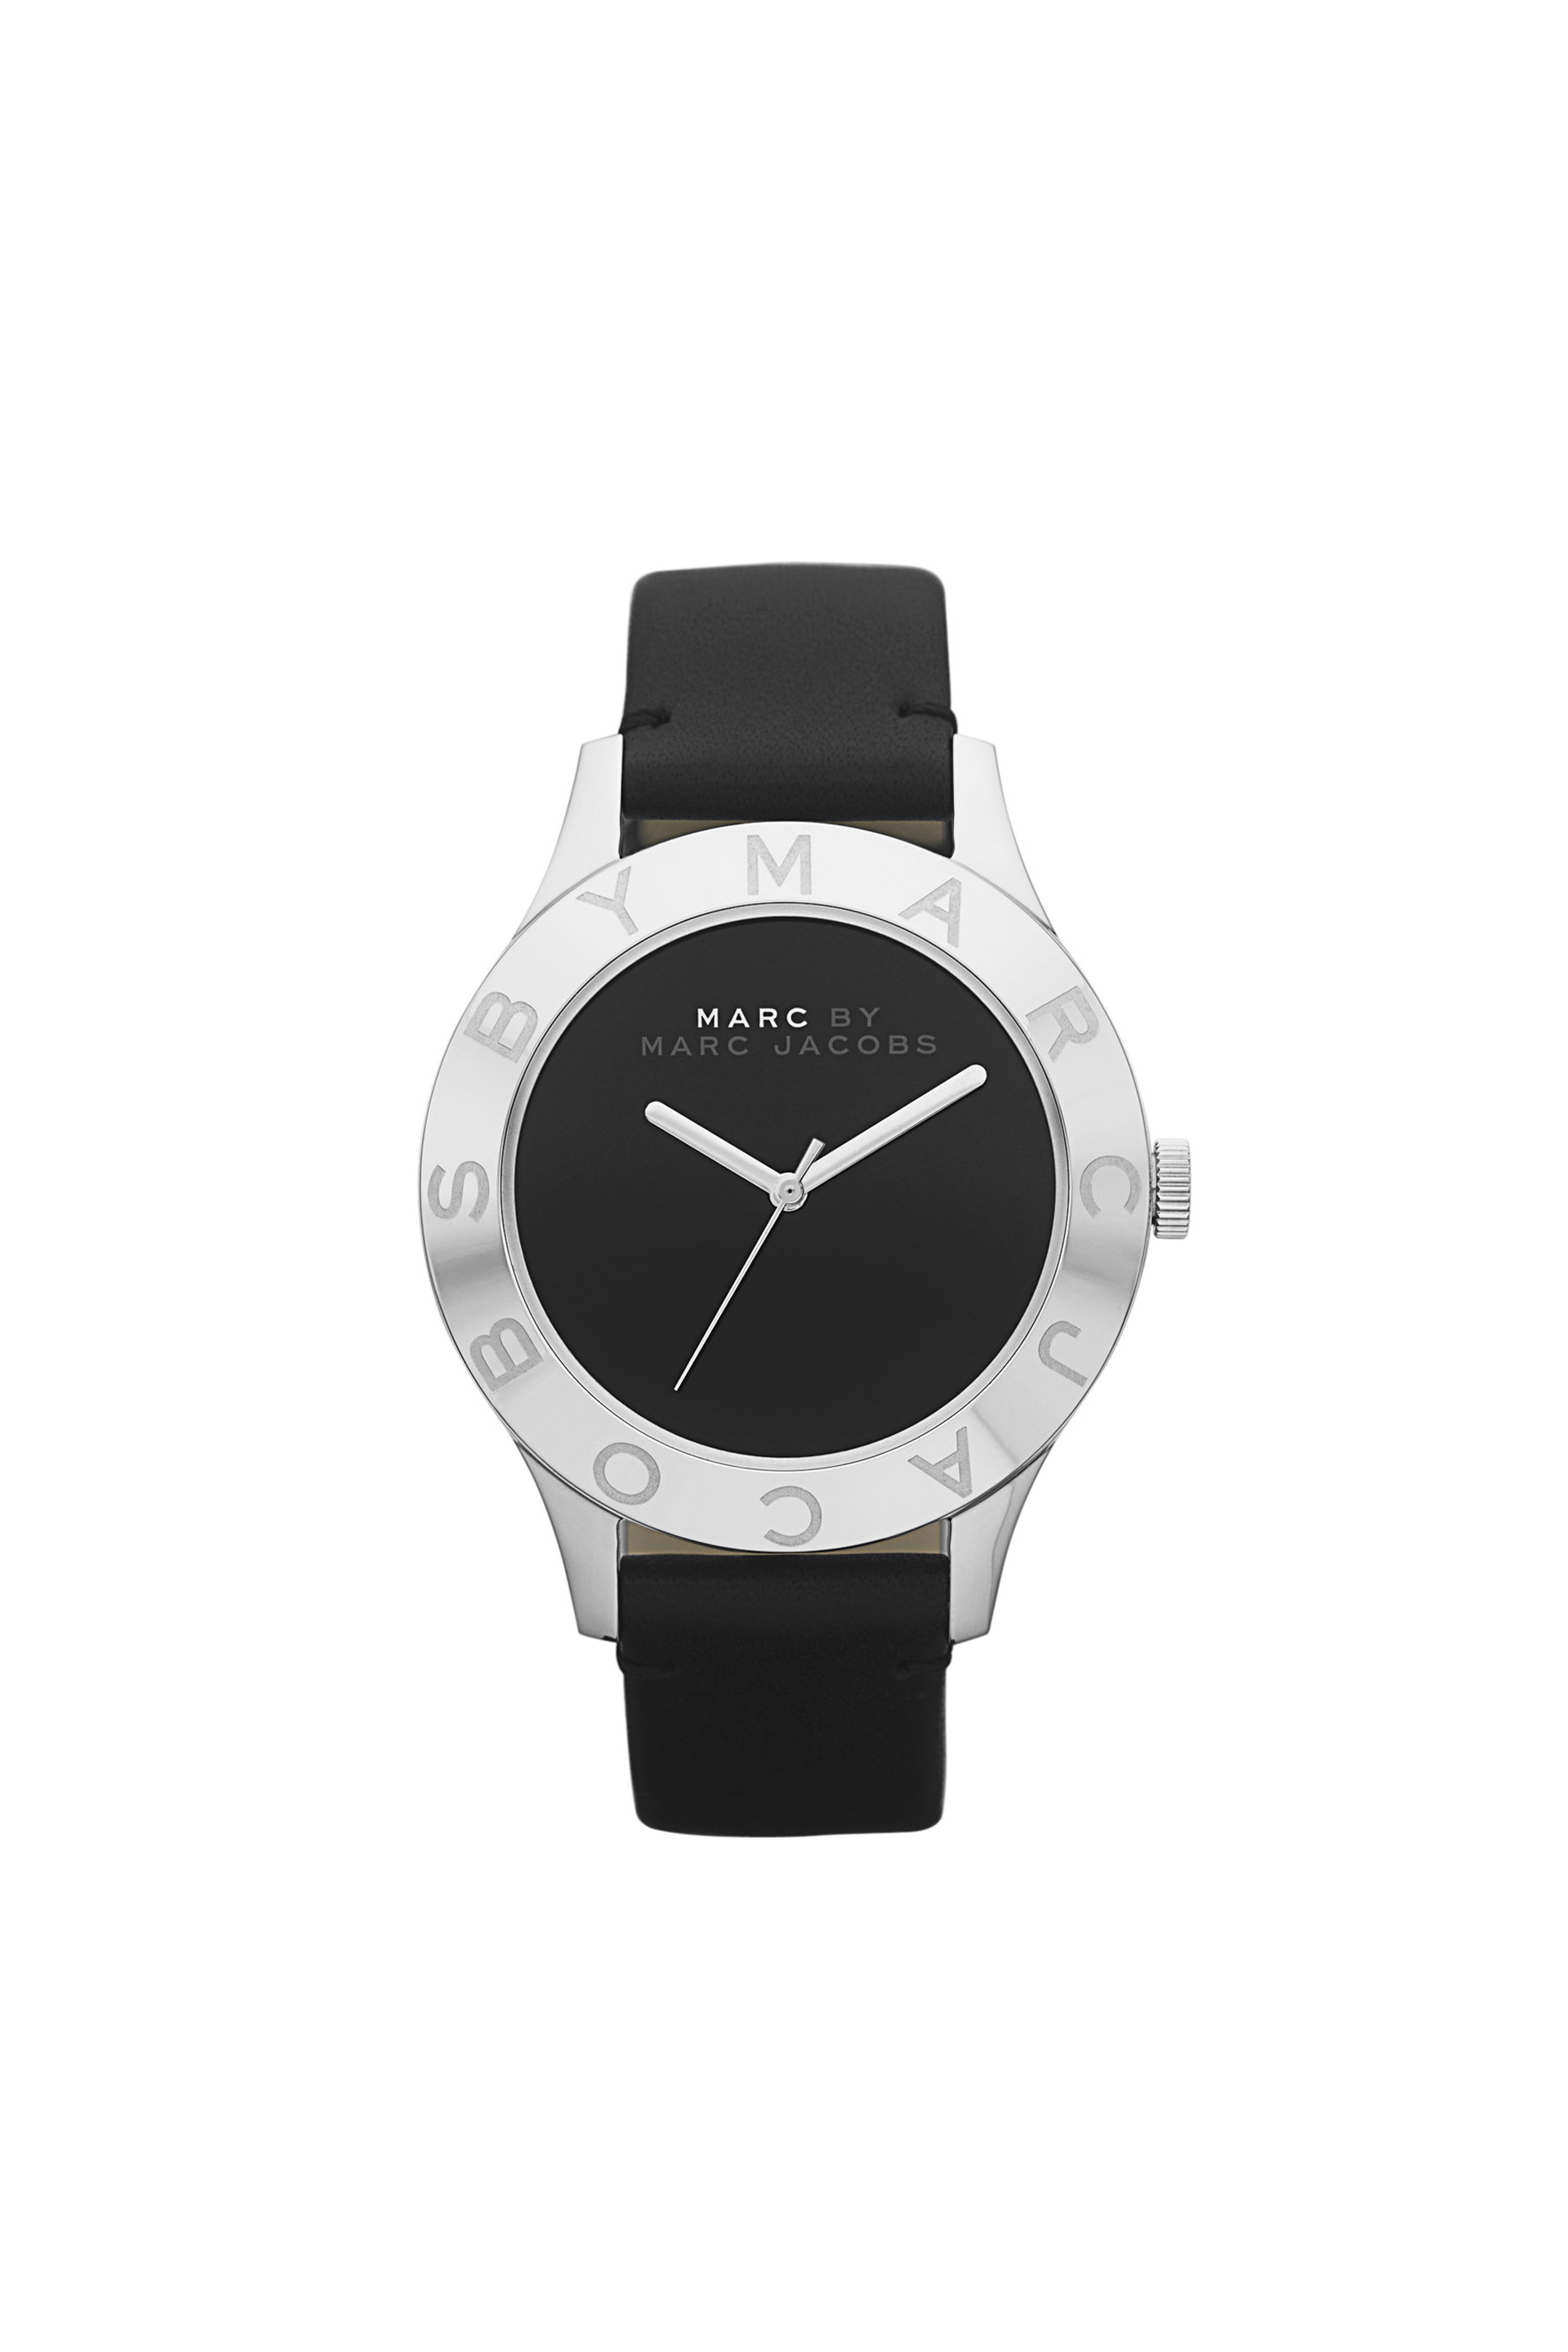 Black Patent Blade 40MM - Watches - Shop marcjacobs.com - Marc Jacobs